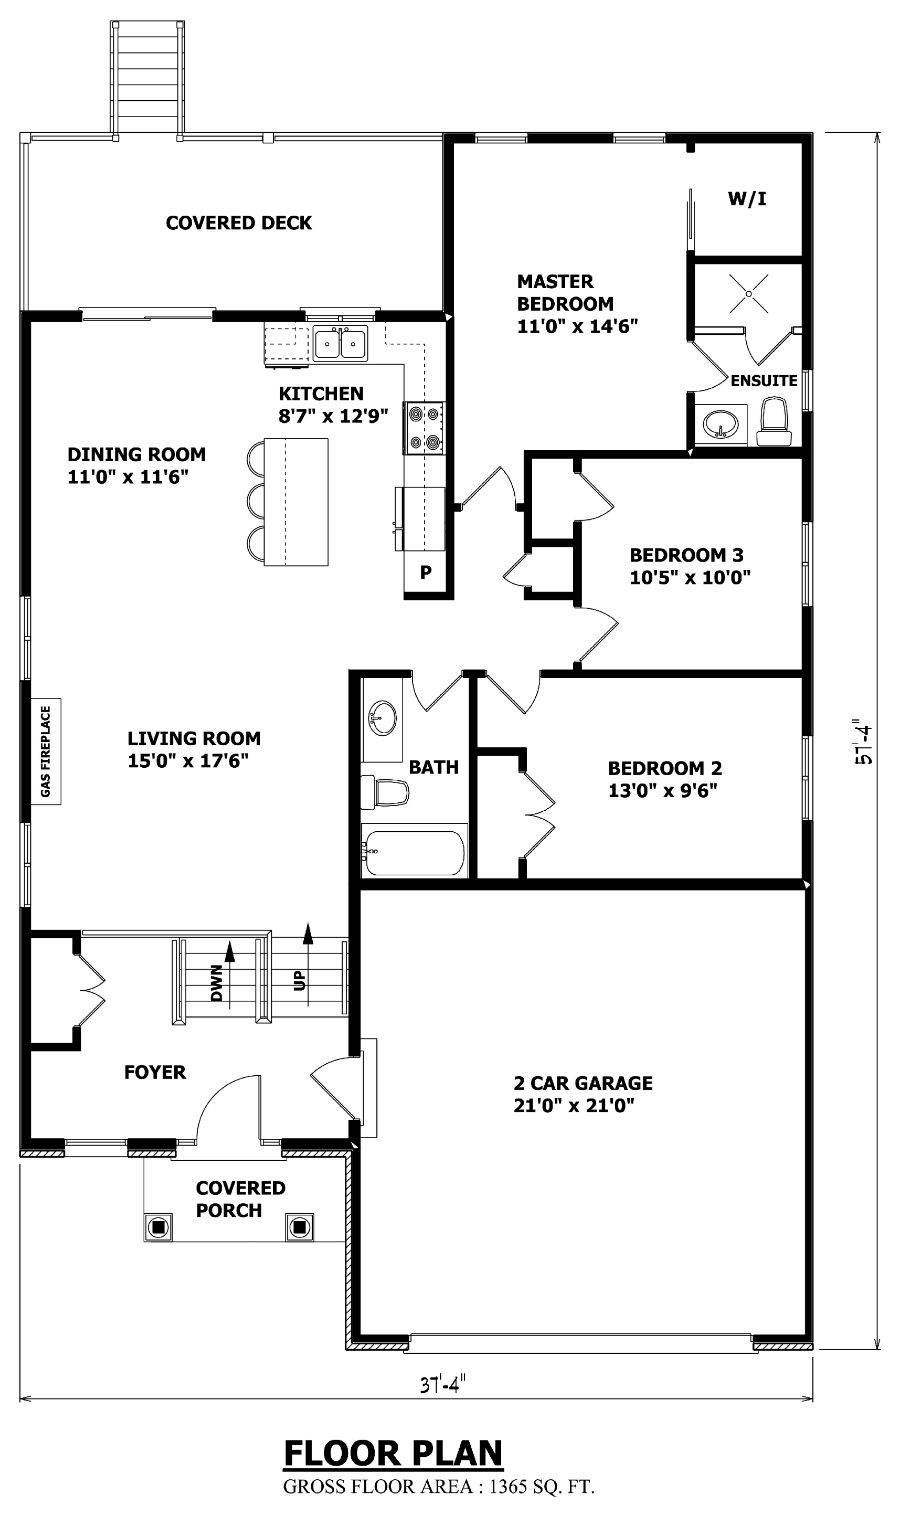 House Plans Canada Stock Custom Floor Plans House Plans House Floor Plans